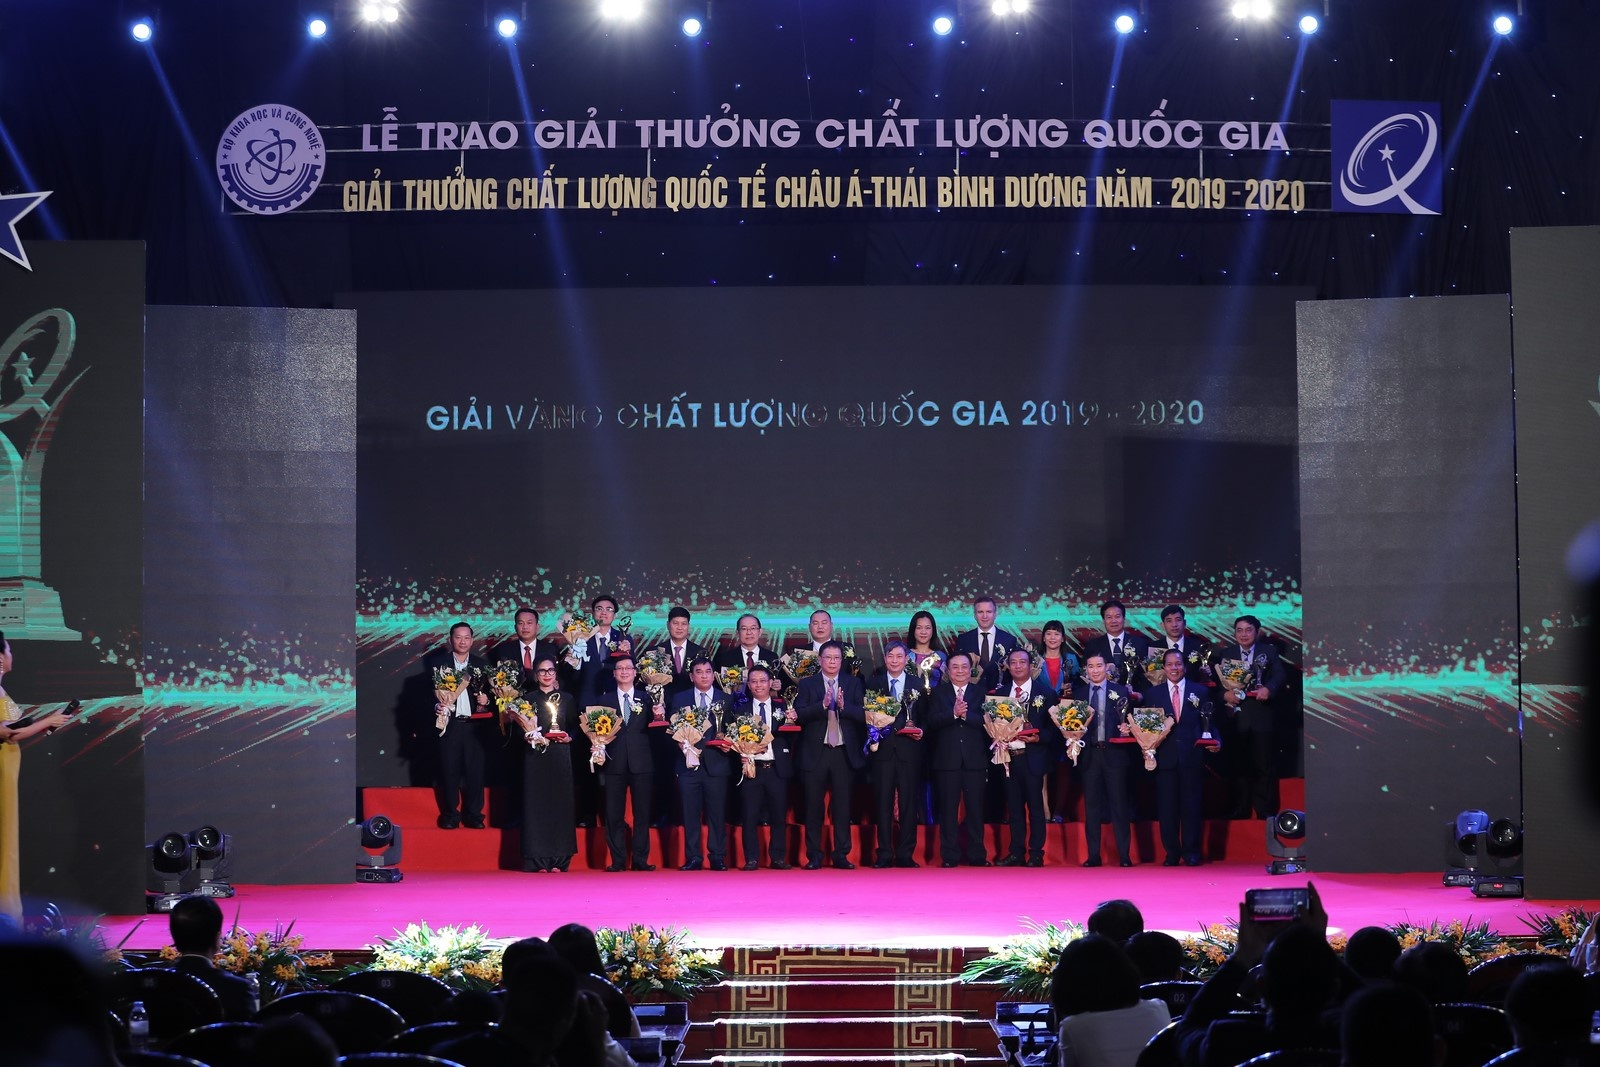 nestle viet nam voi hanh trinh 25 nam nang cao chat luong cuoc song